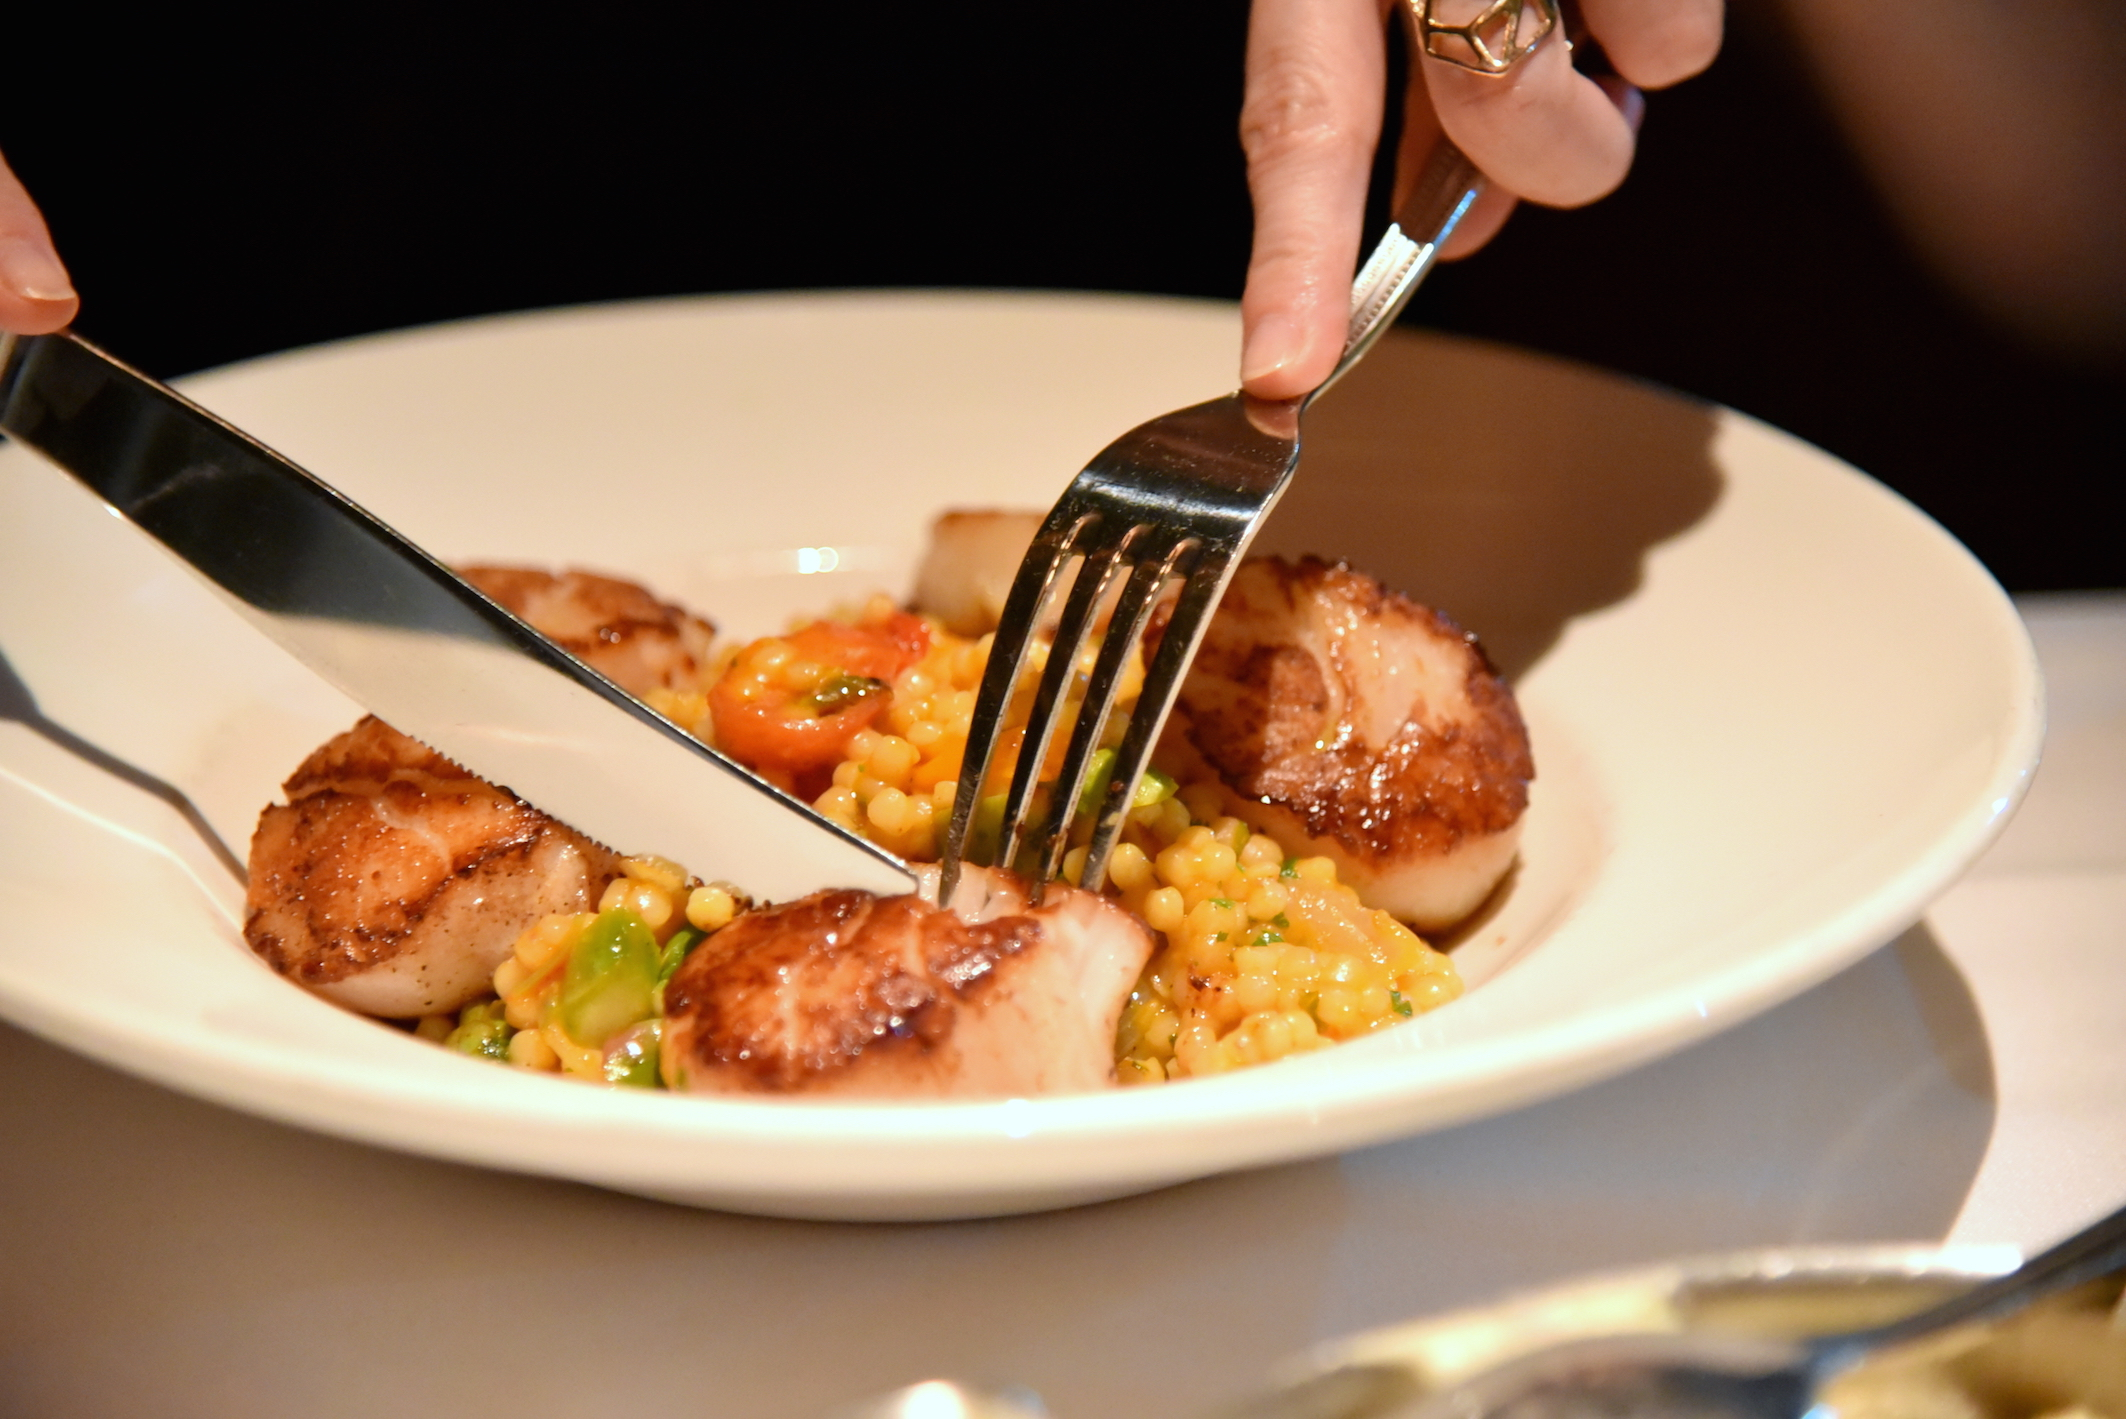 Luxurious dinner at the Capital Grille in New York